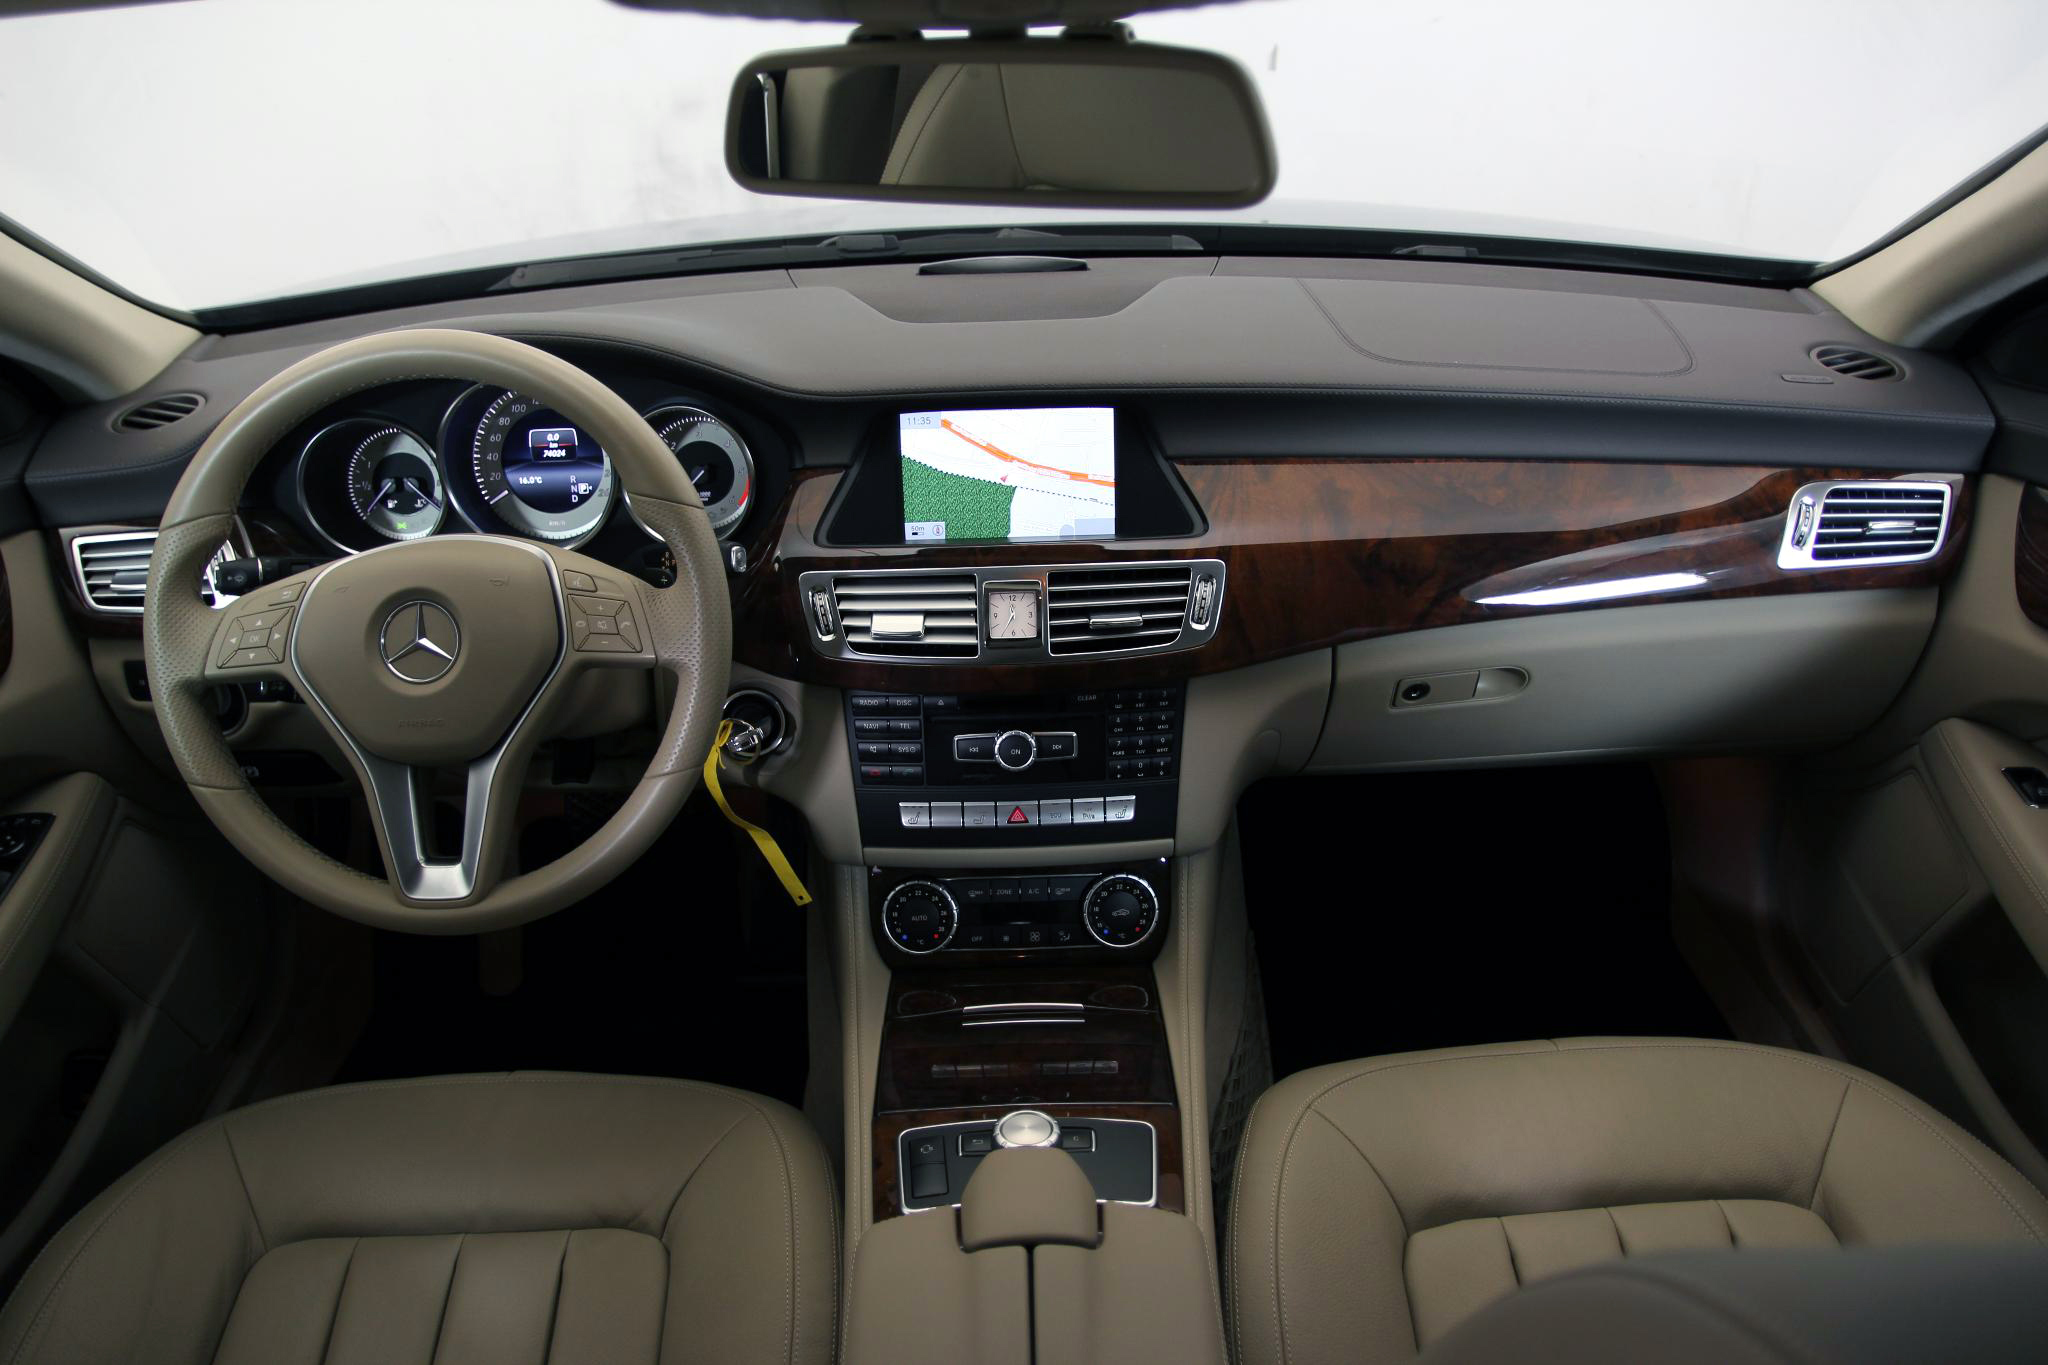 Mercedes-Benz Clase CLS CLS SHOOTING BRAKE 350 CDI AUTO imagen 10